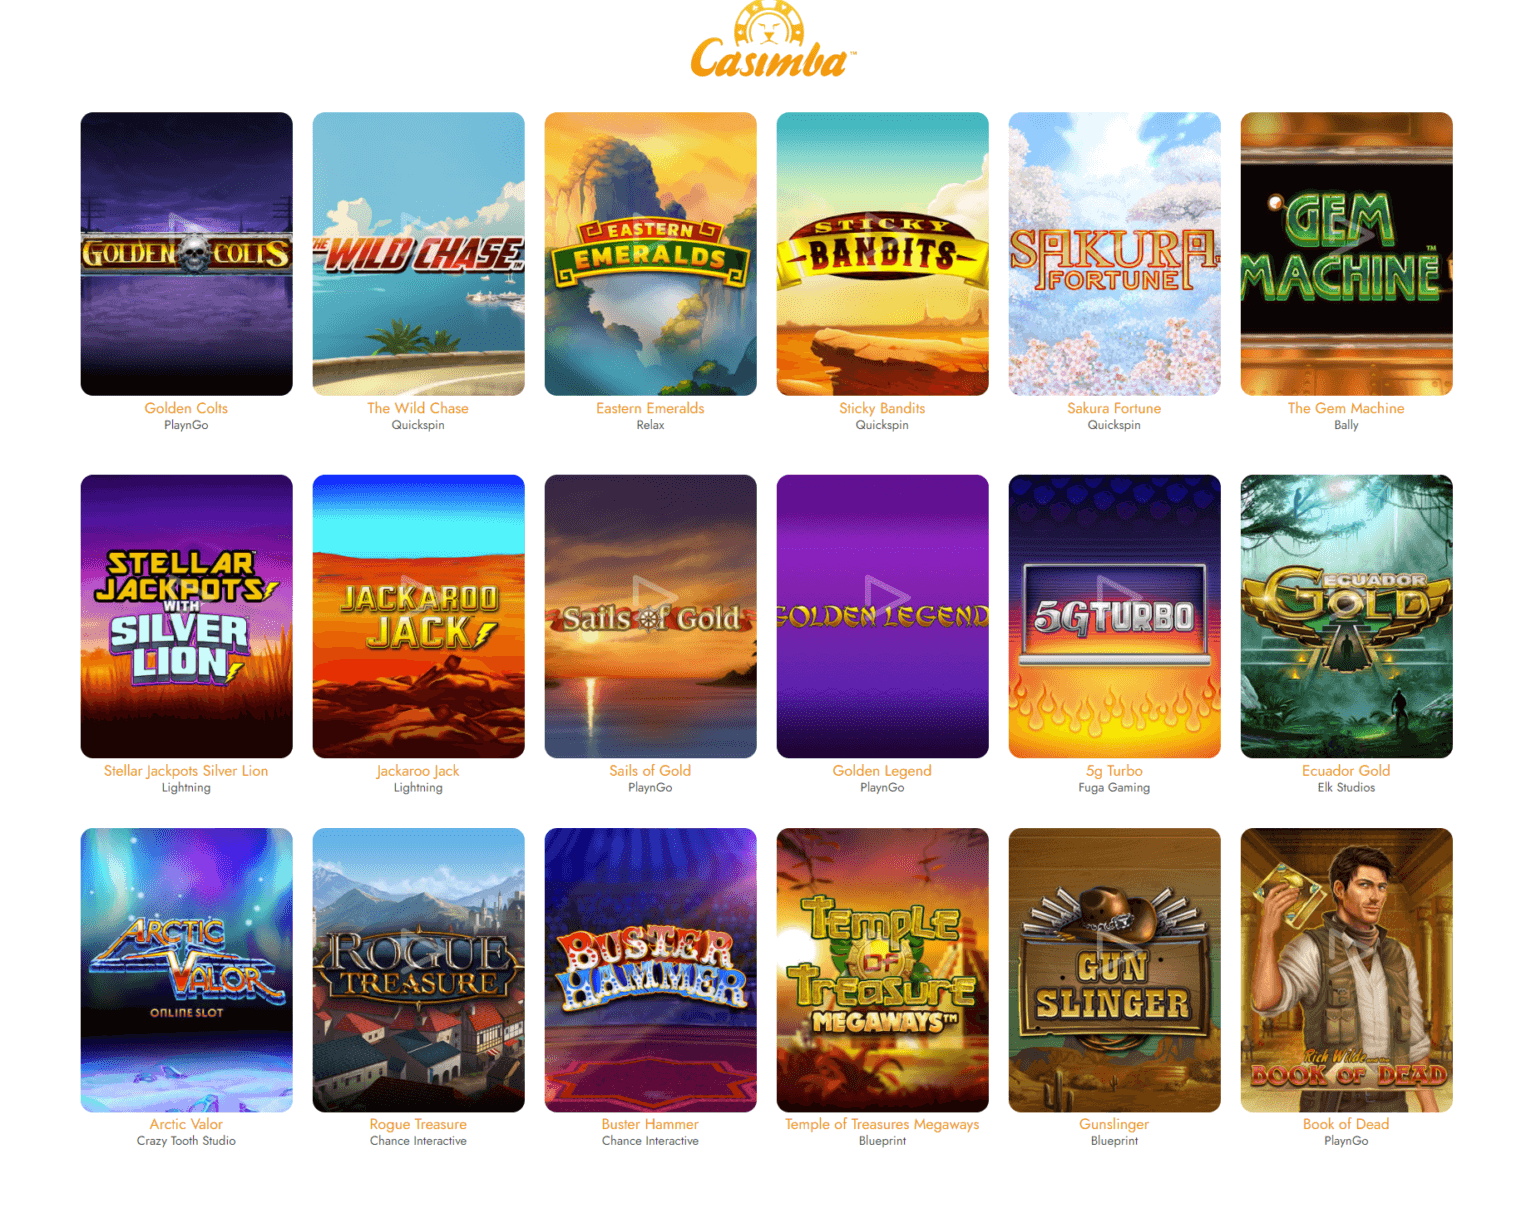 A list of some of the slots you can play at Casimba